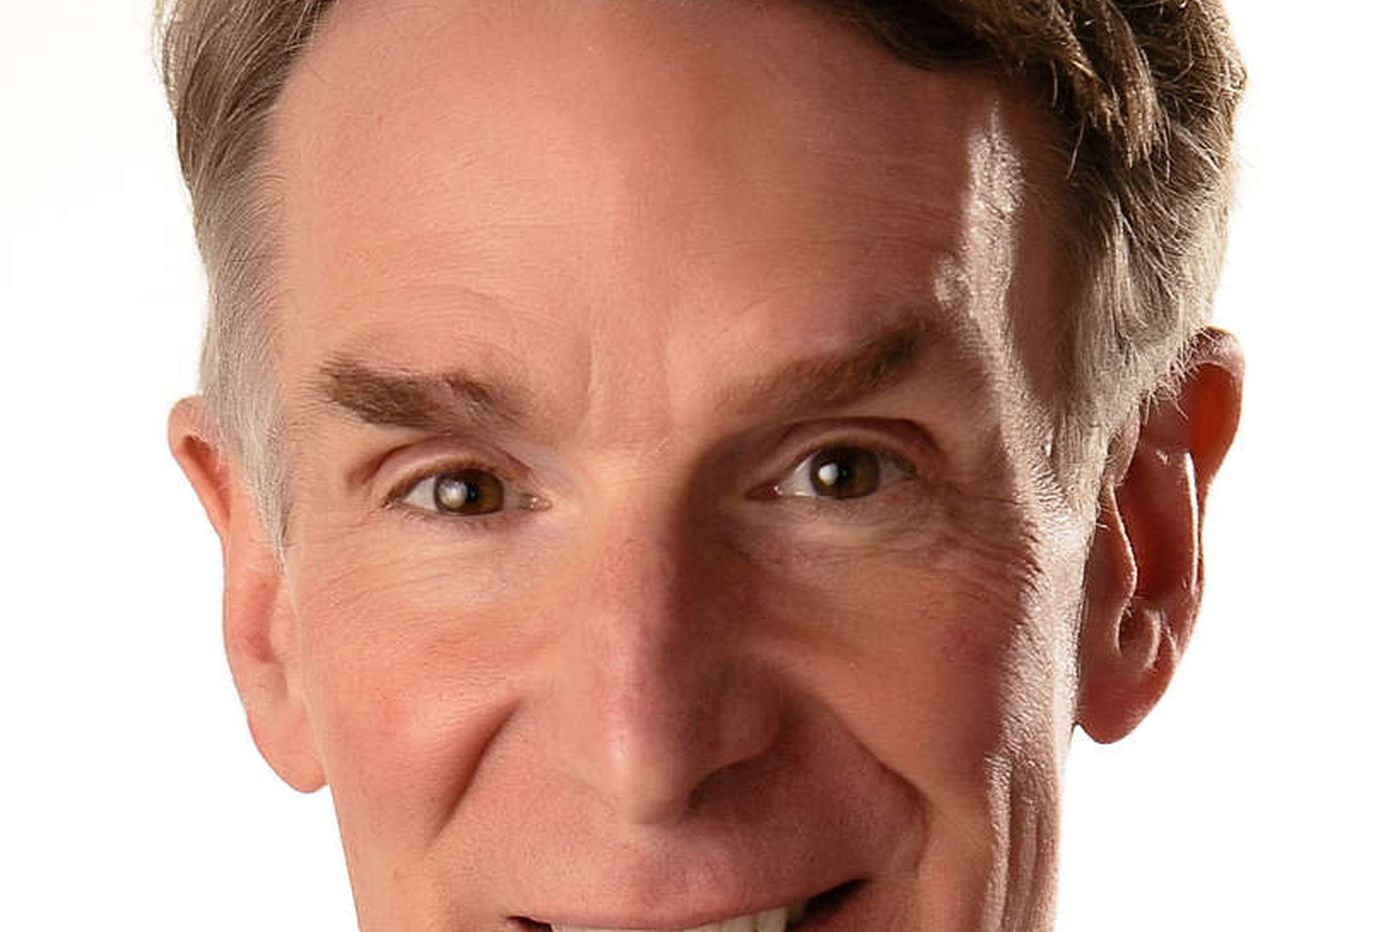 Bill Nye brings his science insights to town